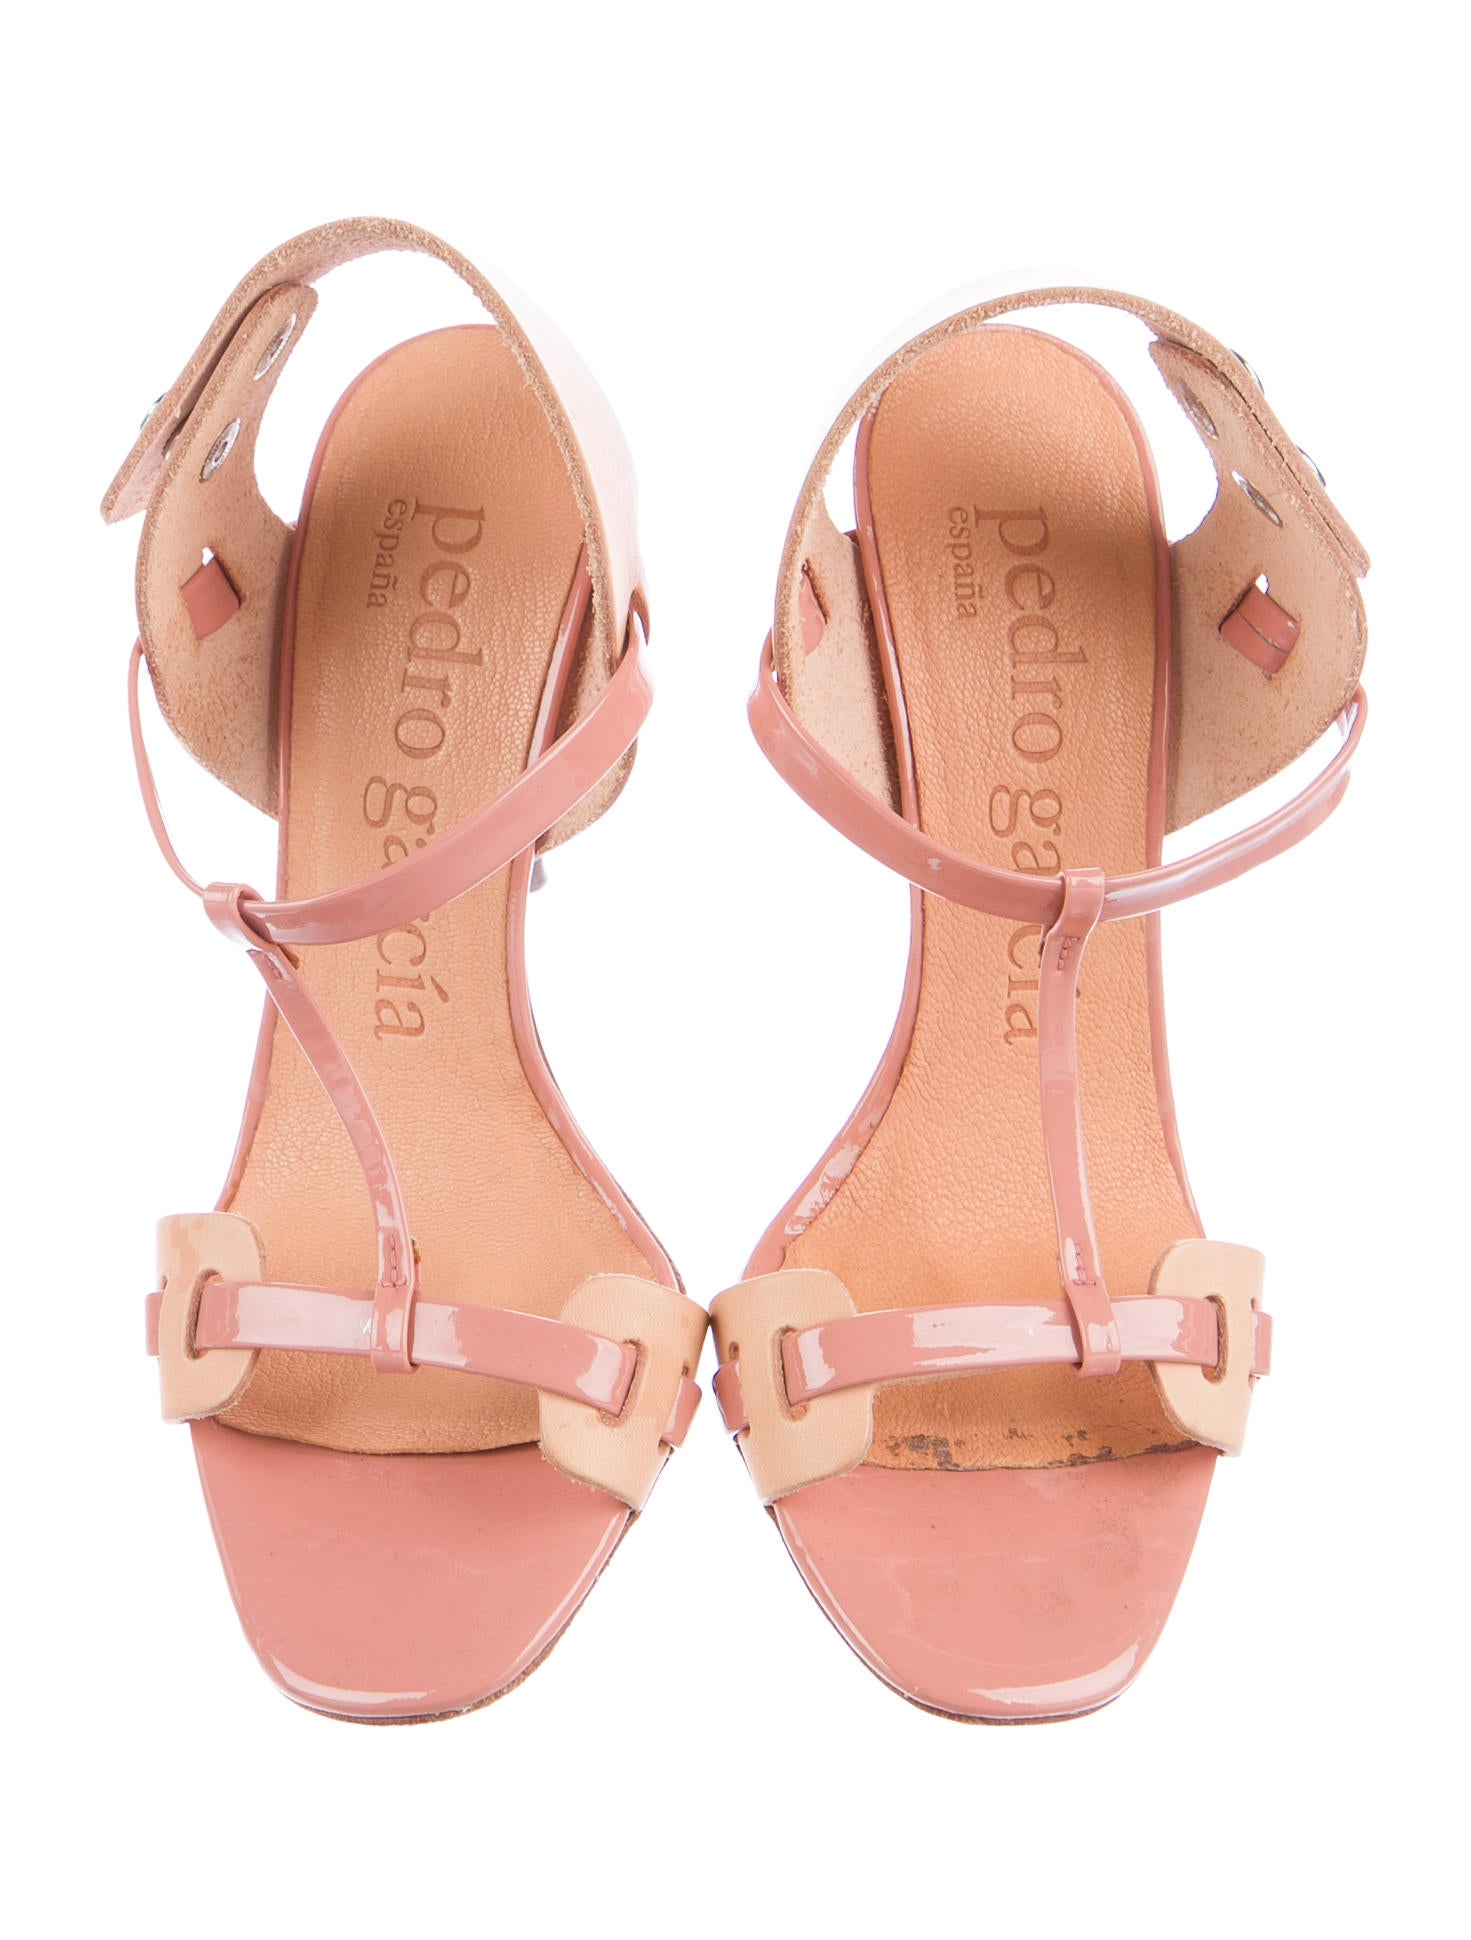 free shipping clearance Pedro Garcia Micaela T-Strap Sandals for sale free shipping 1Wm7RC5Wbn